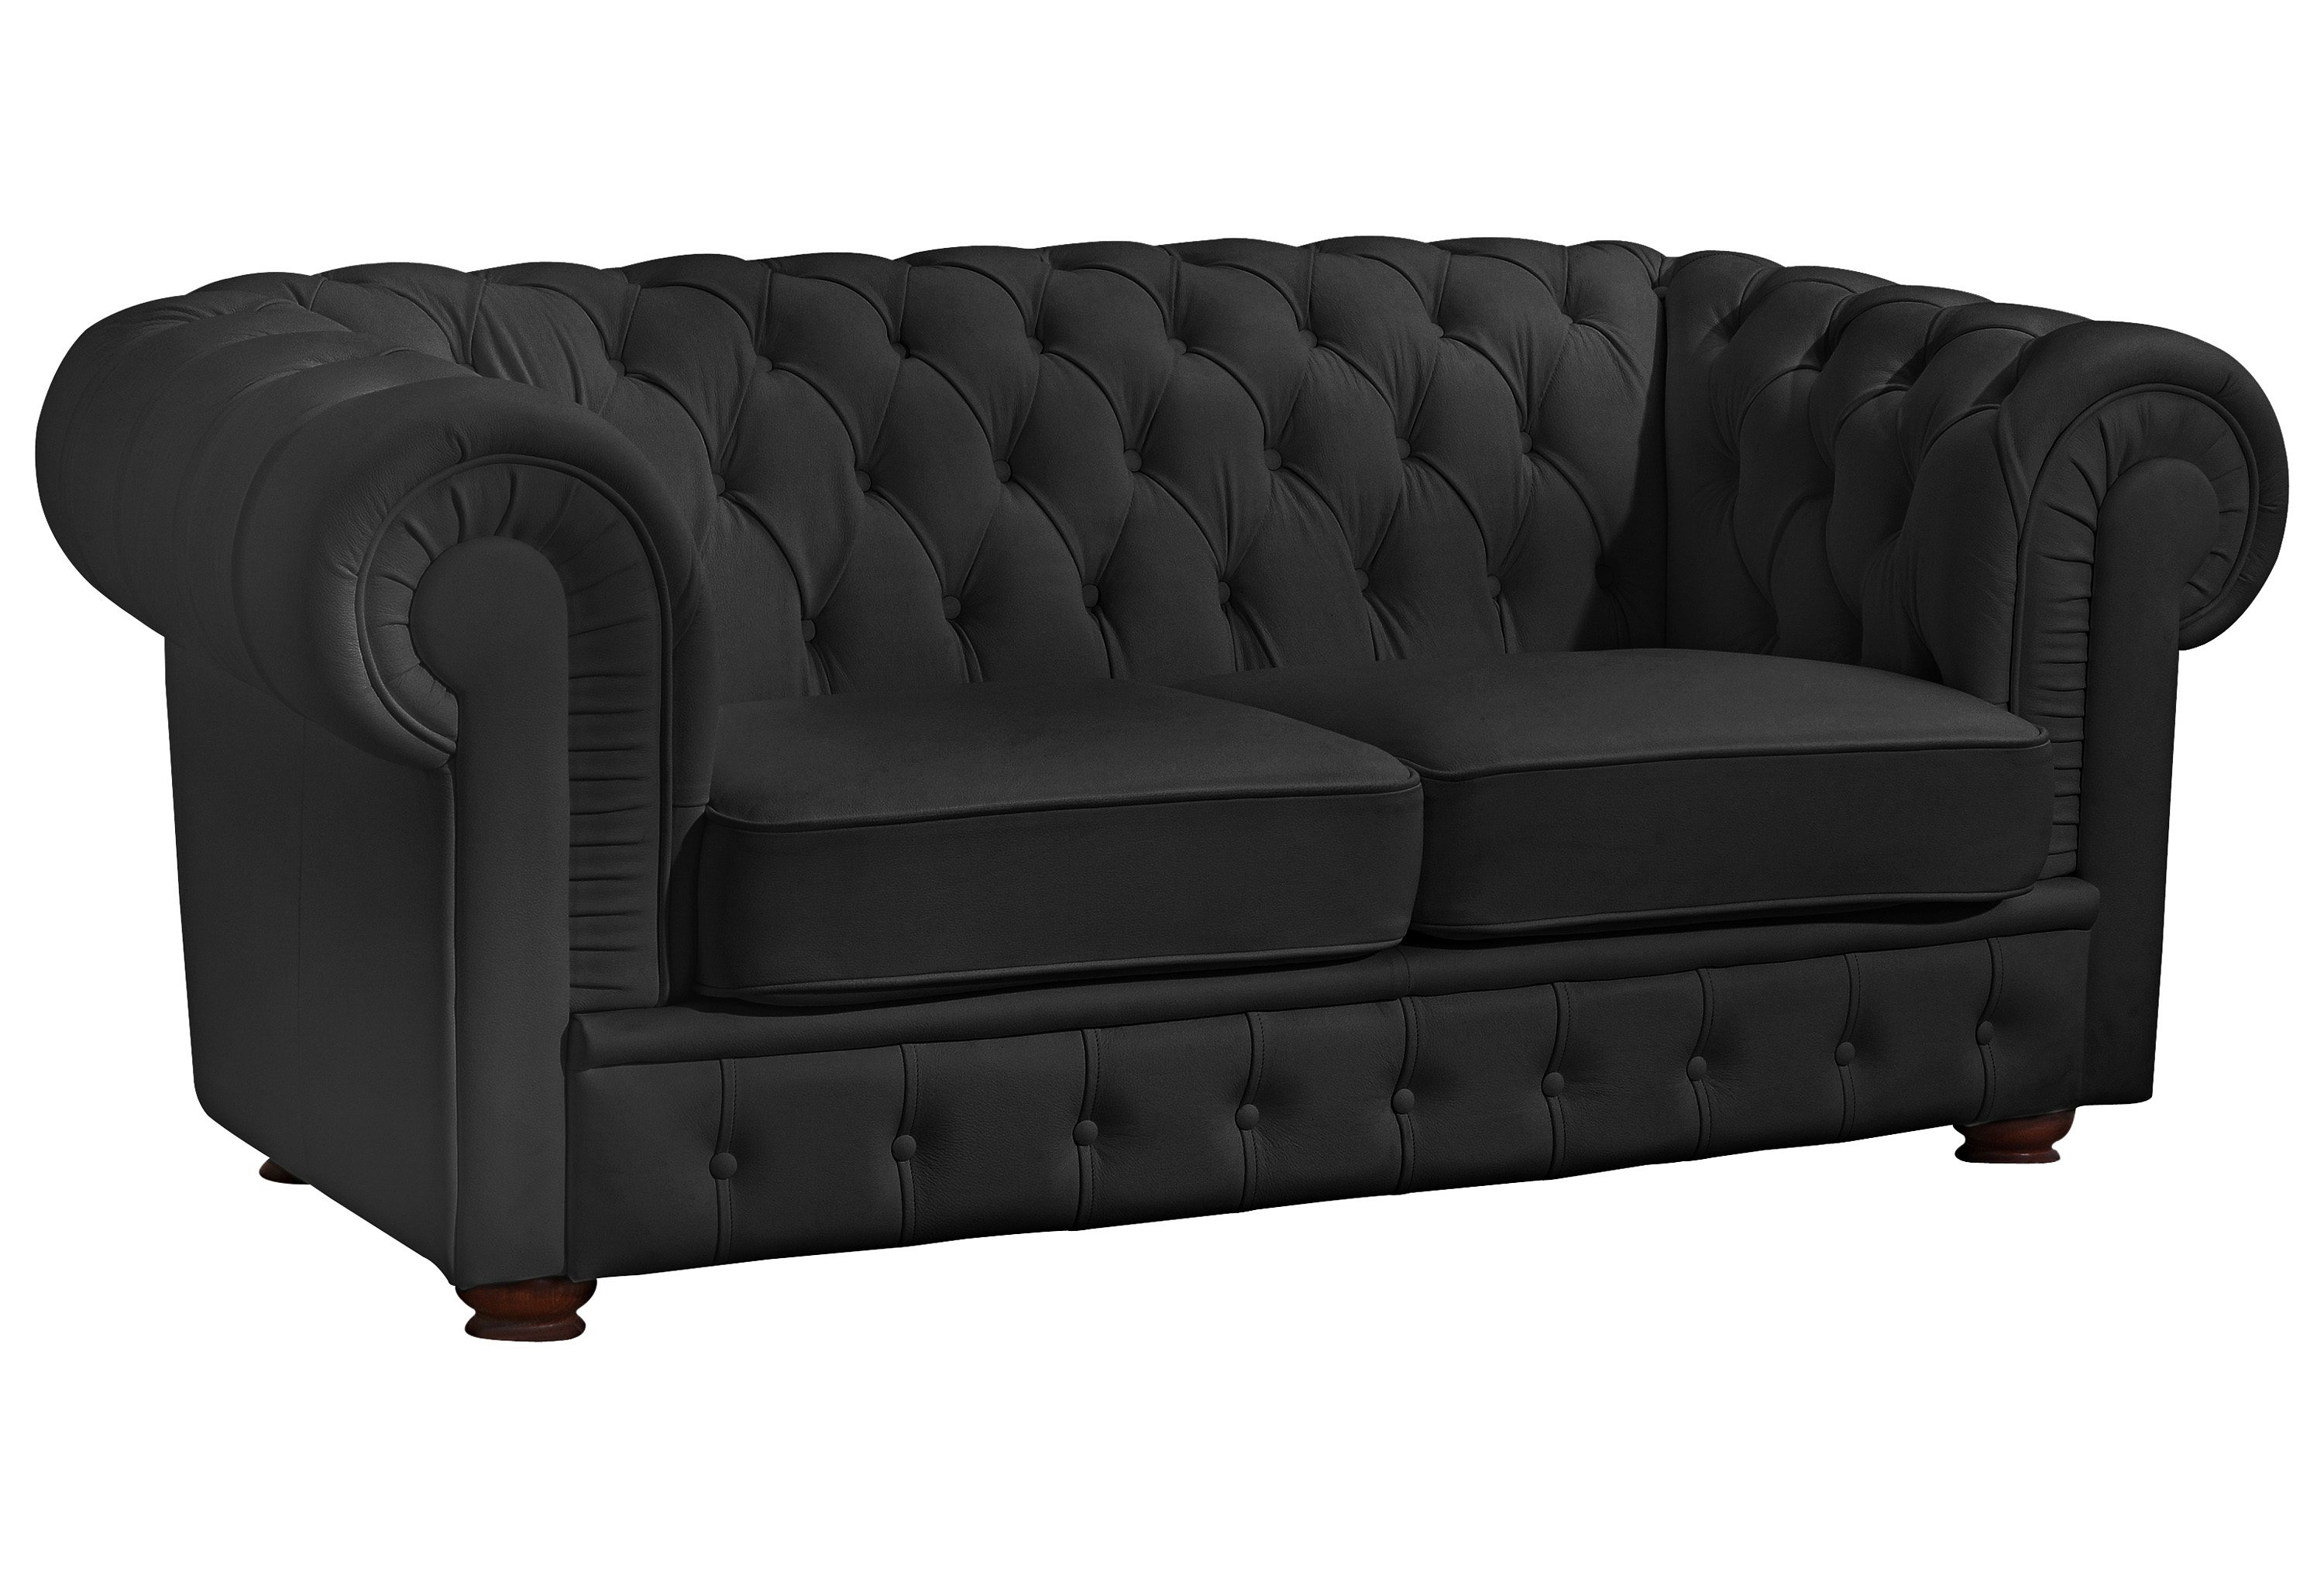 chesterfield sofa preise vergleichen und g nstig. Black Bedroom Furniture Sets. Home Design Ideas